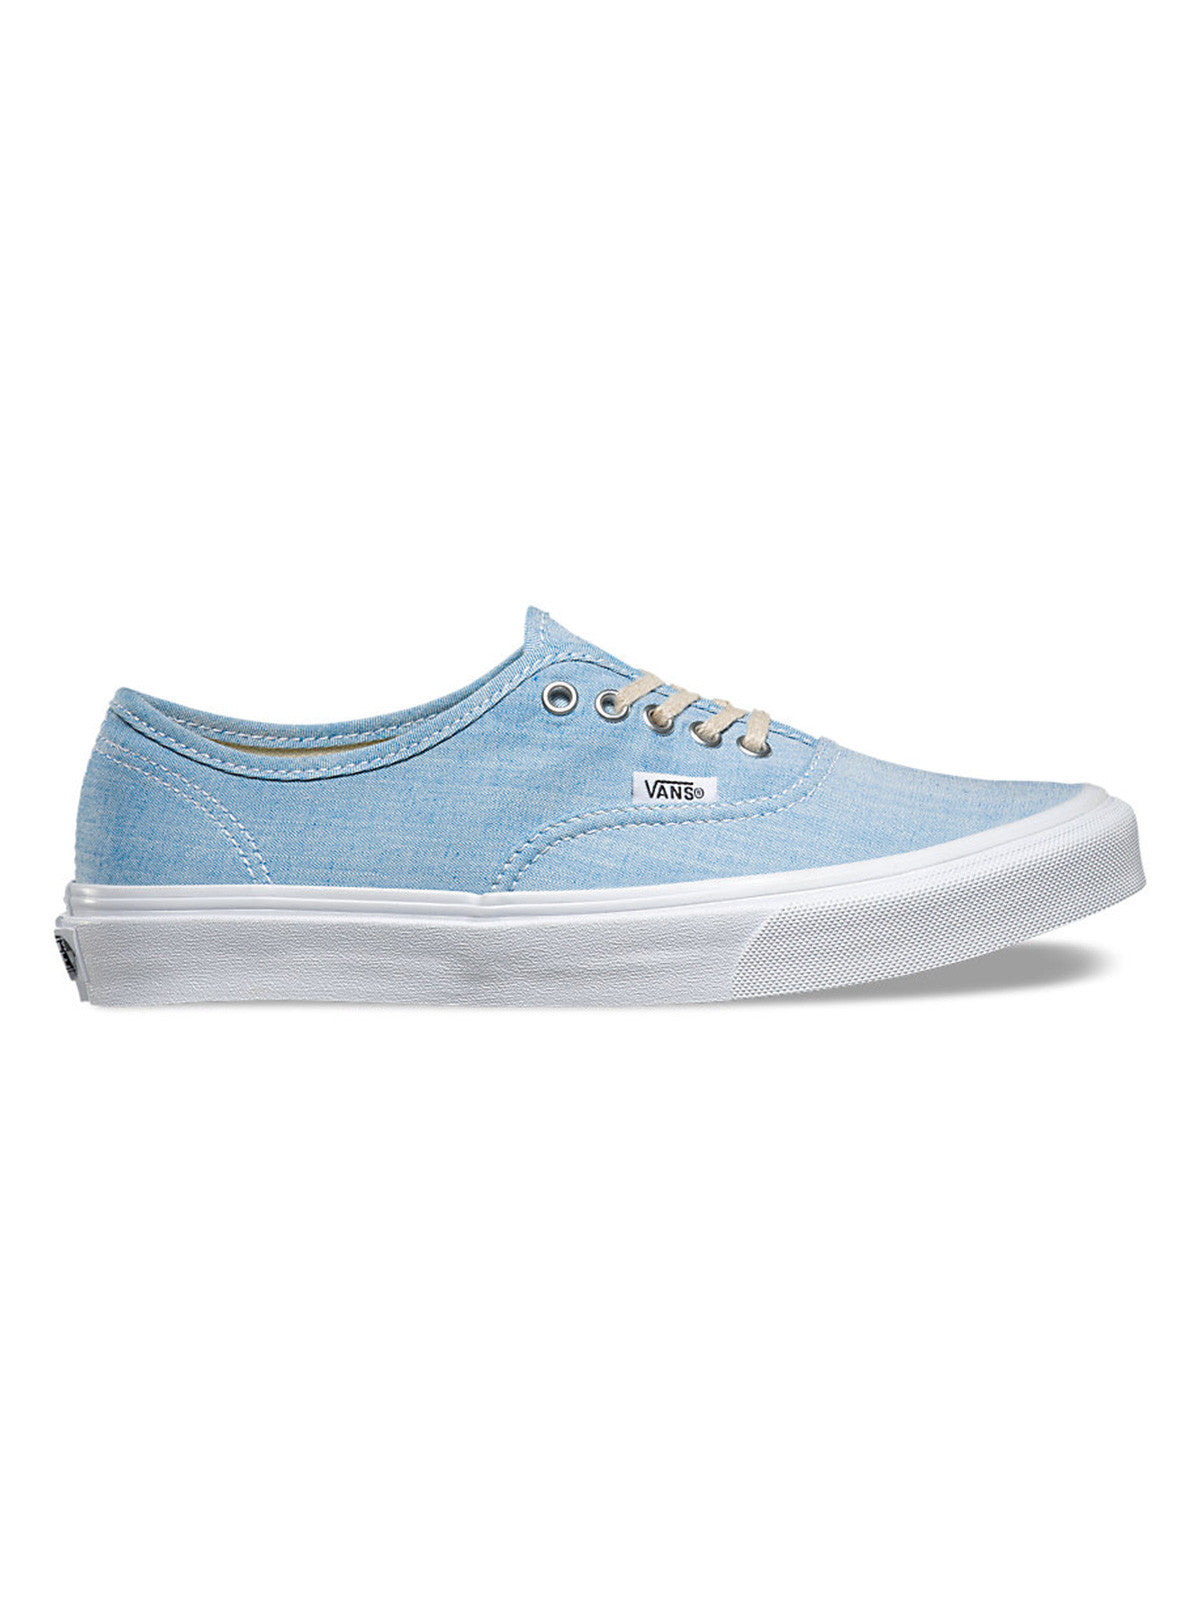 Vans Authentic Slim - Chambray Blue